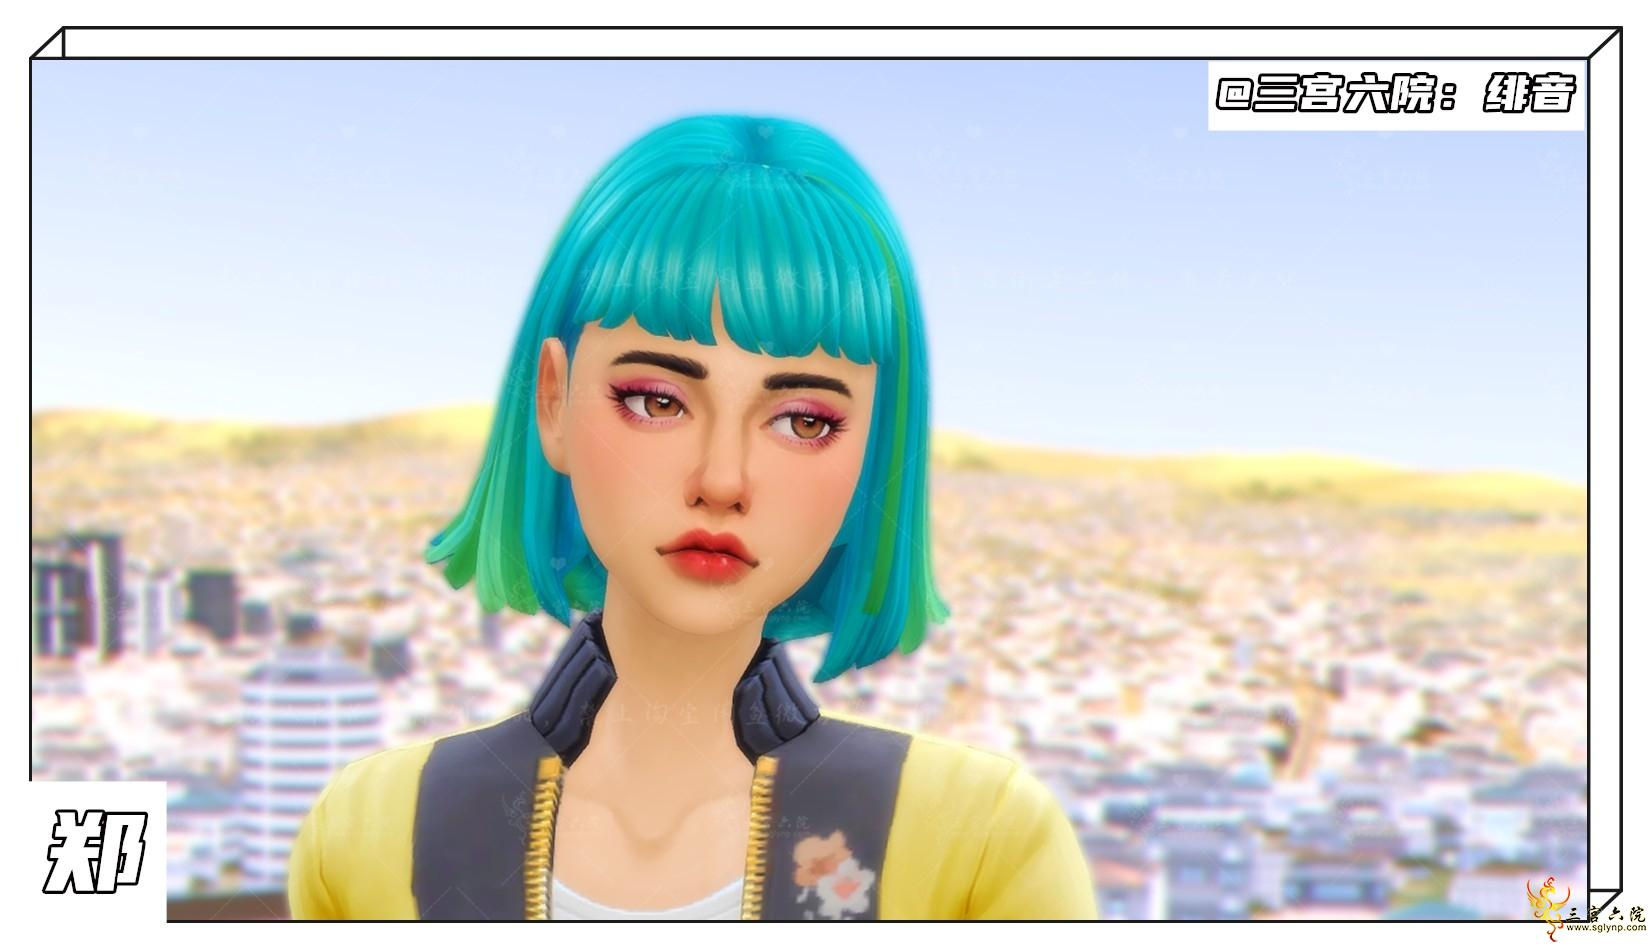 TS4_x64 2021-08-02 14-55-22_副本.png